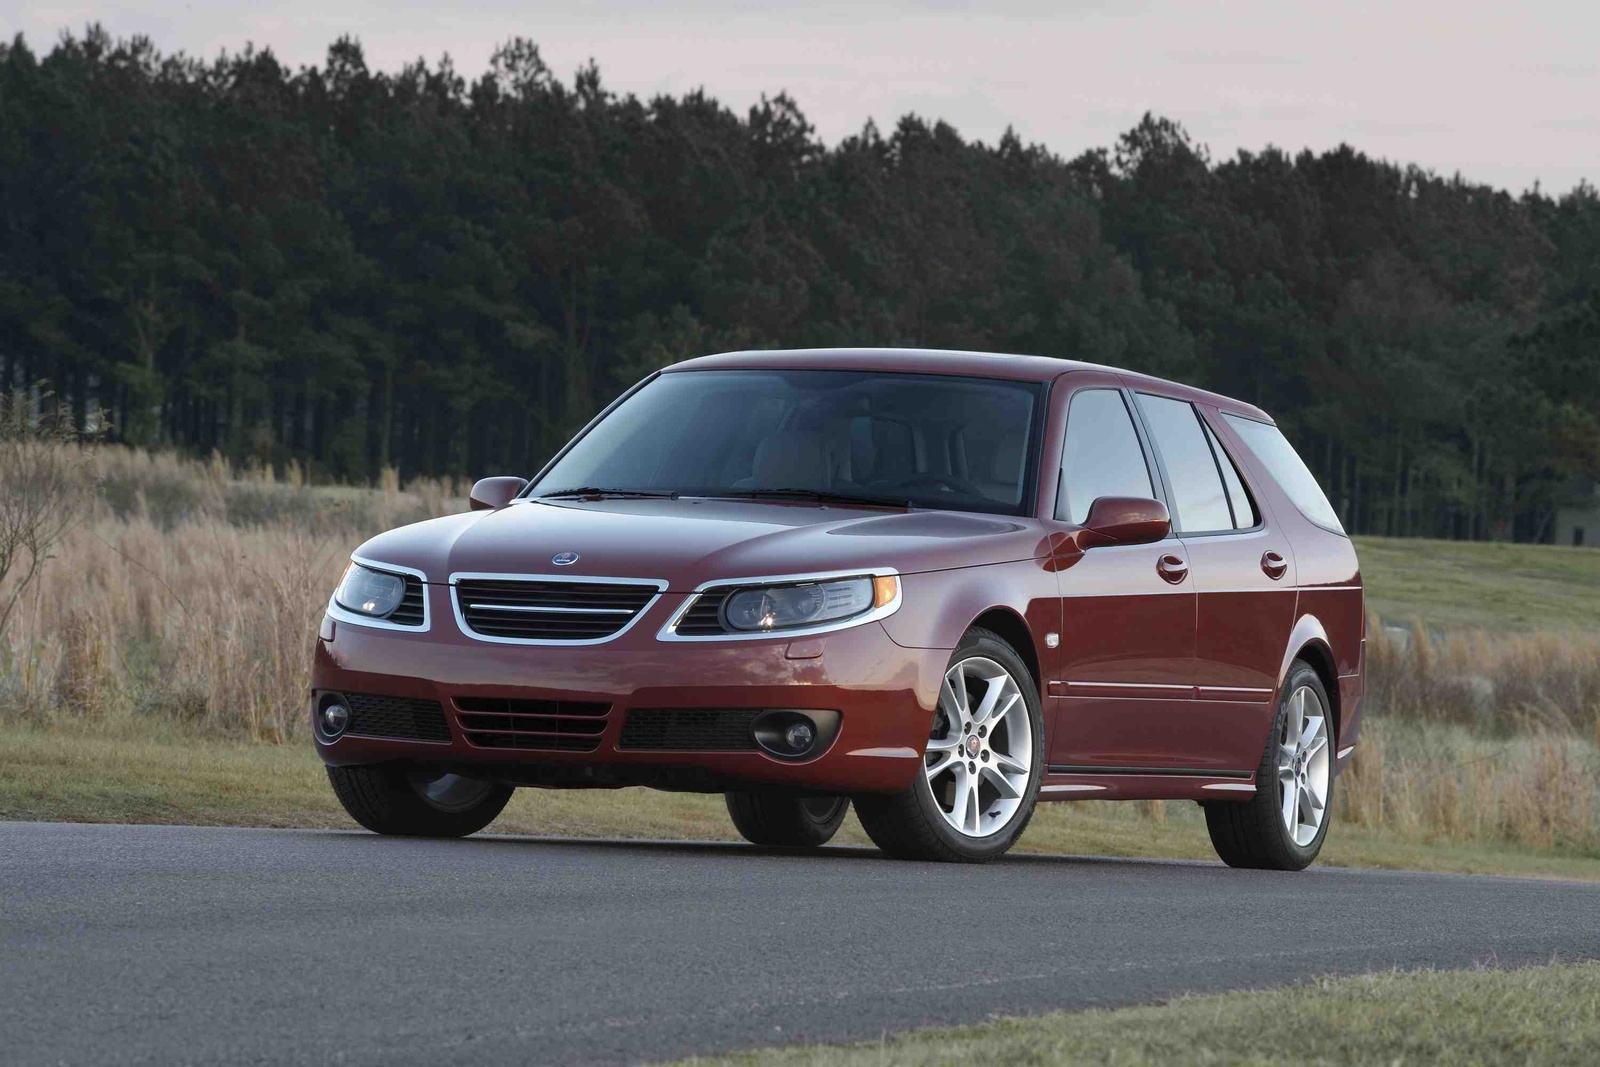 2009 saab 9 5 sportcombi review cargurus. Black Bedroom Furniture Sets. Home Design Ideas